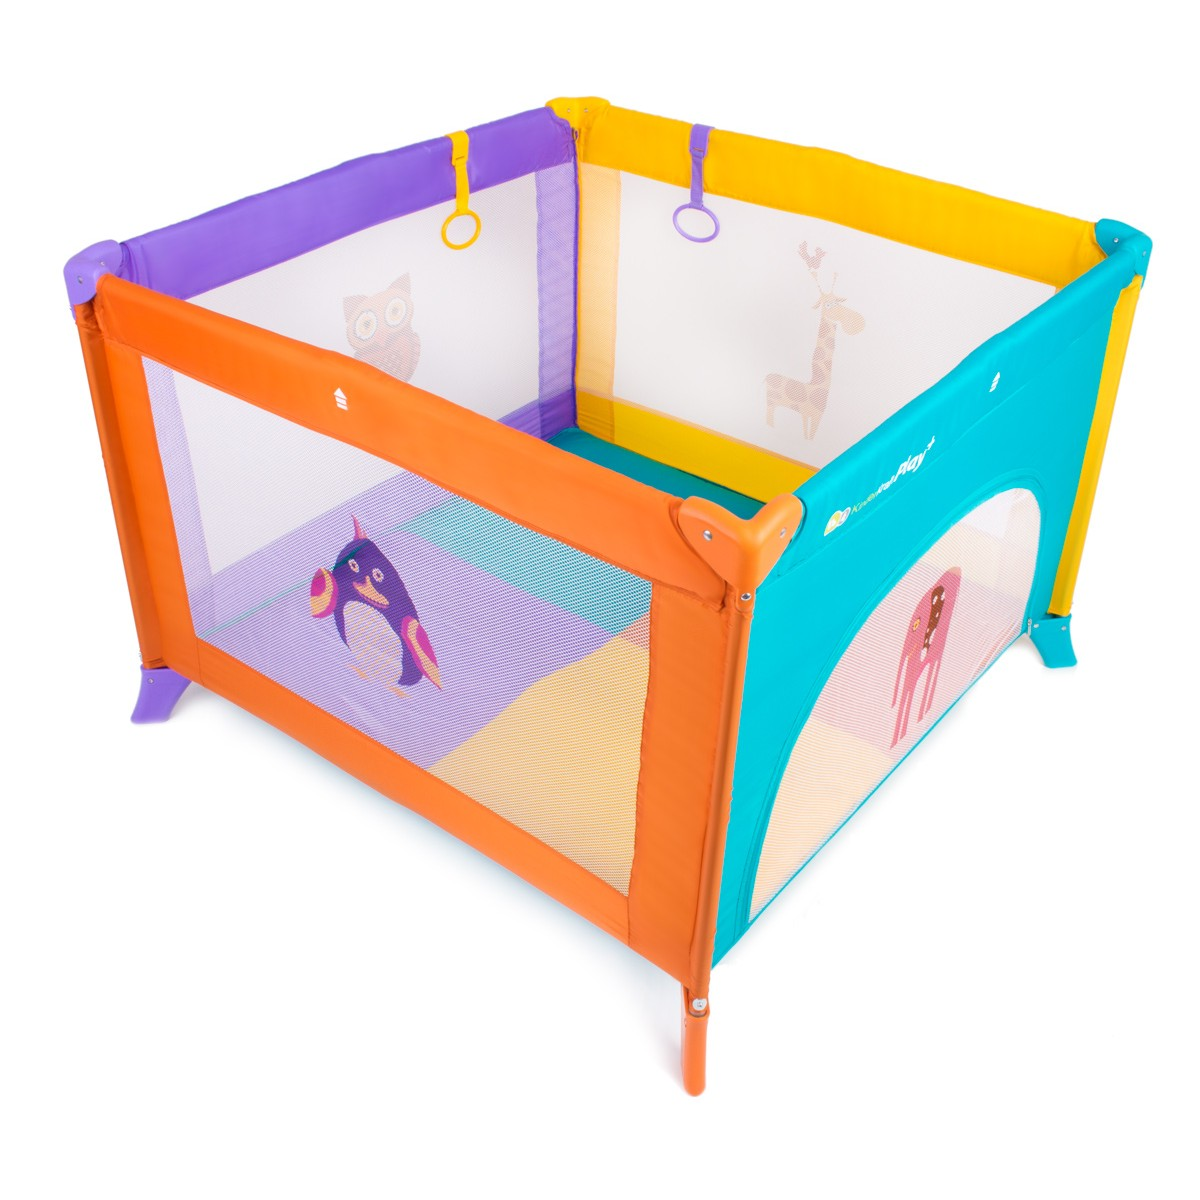 Fold up beds for toddlers : Folding bed playpen travel baby gstebett